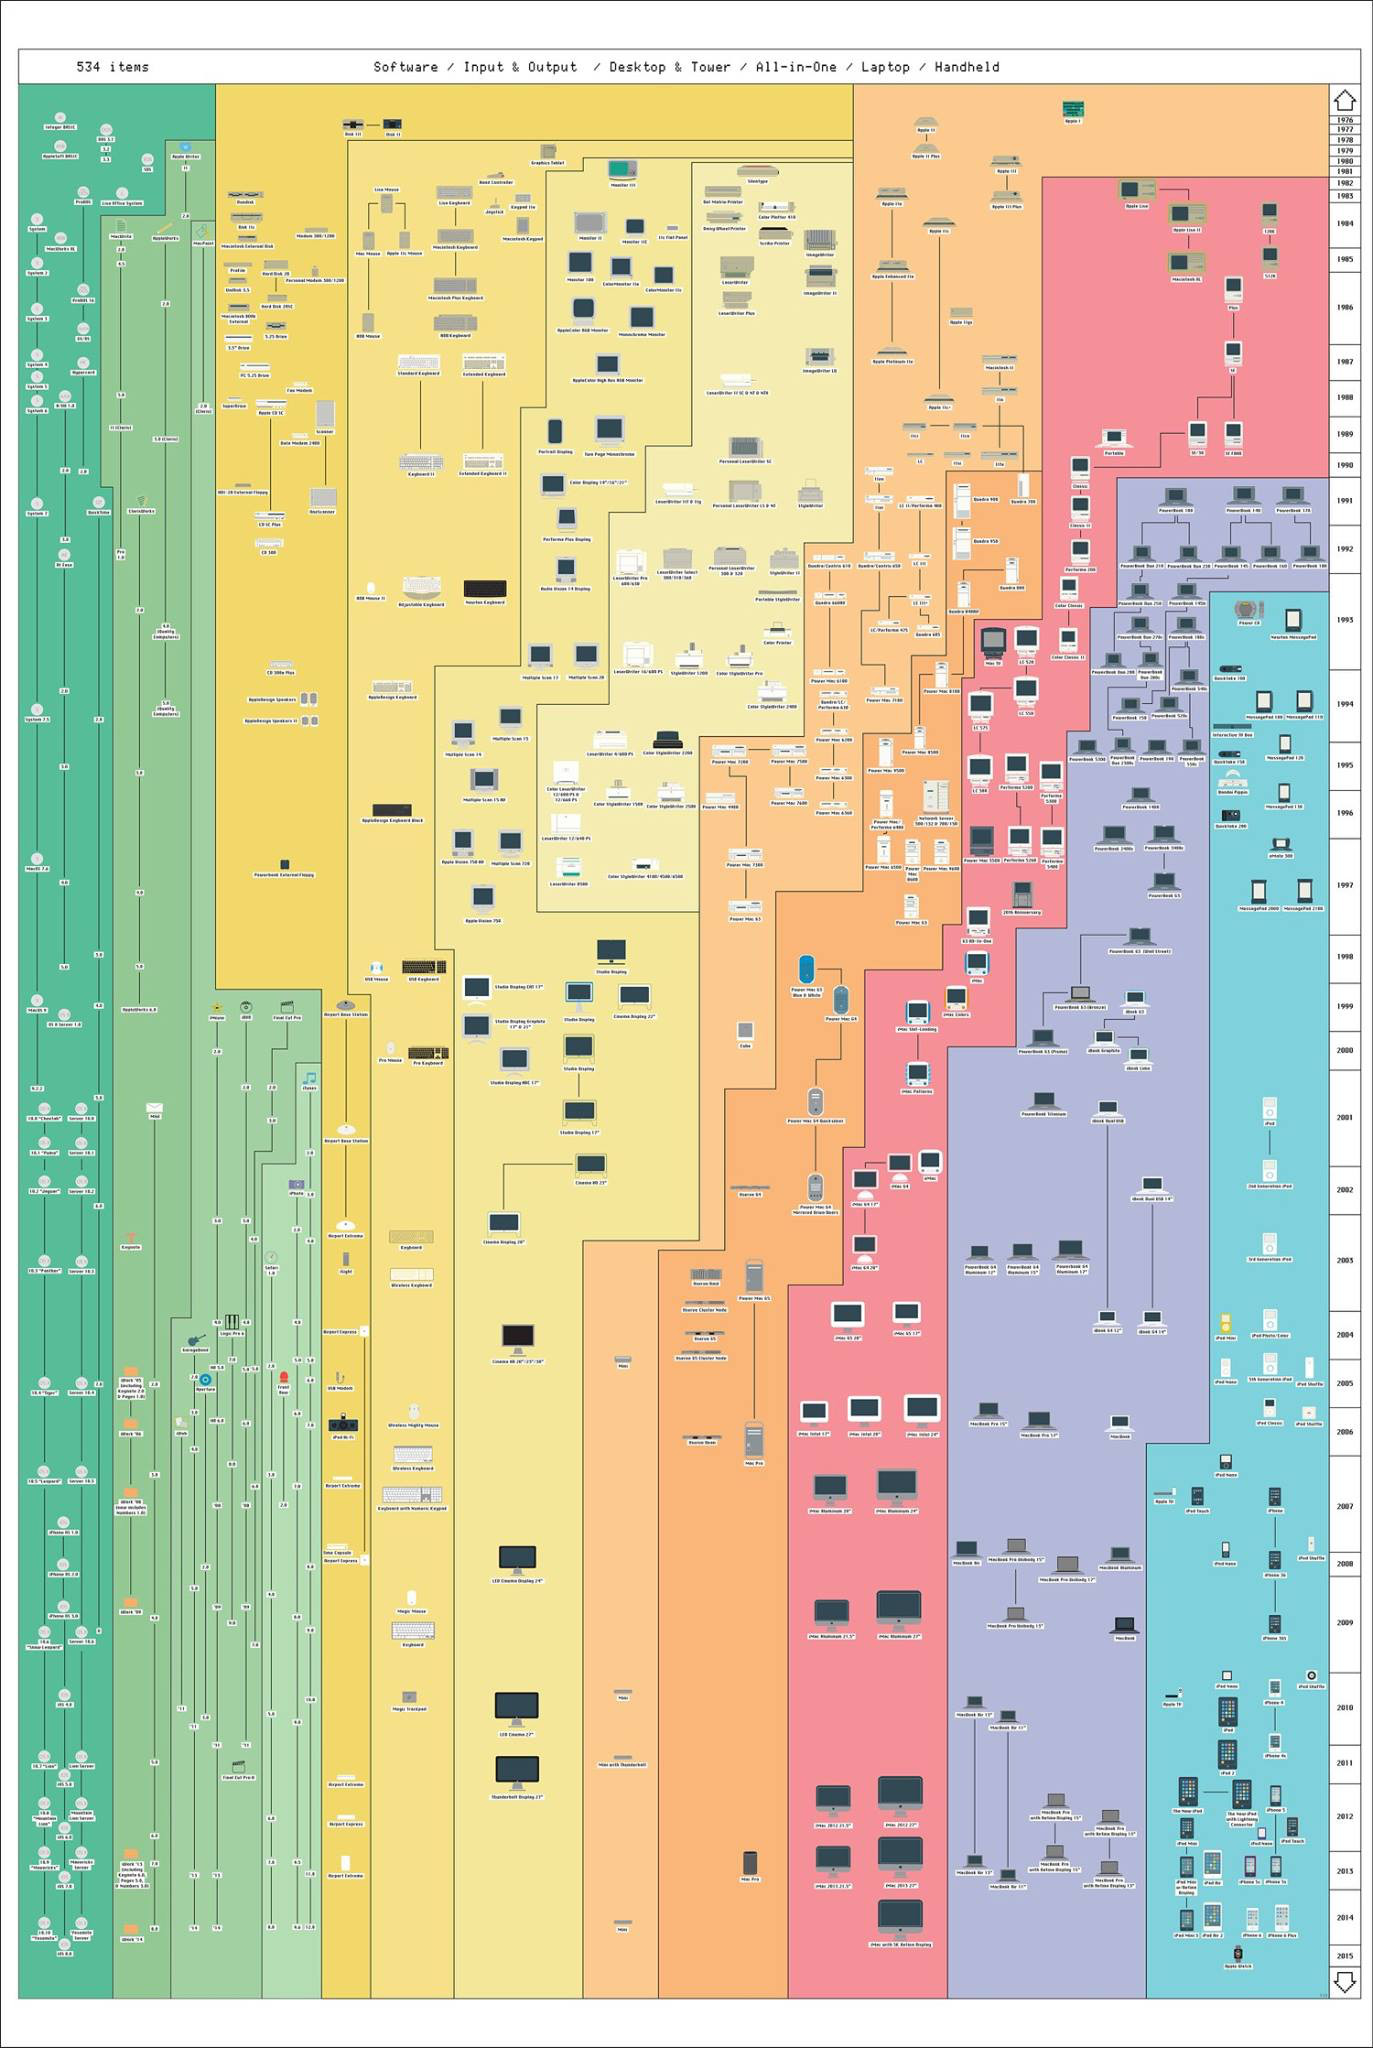 See every Apple product ever made on one poster   The Verge